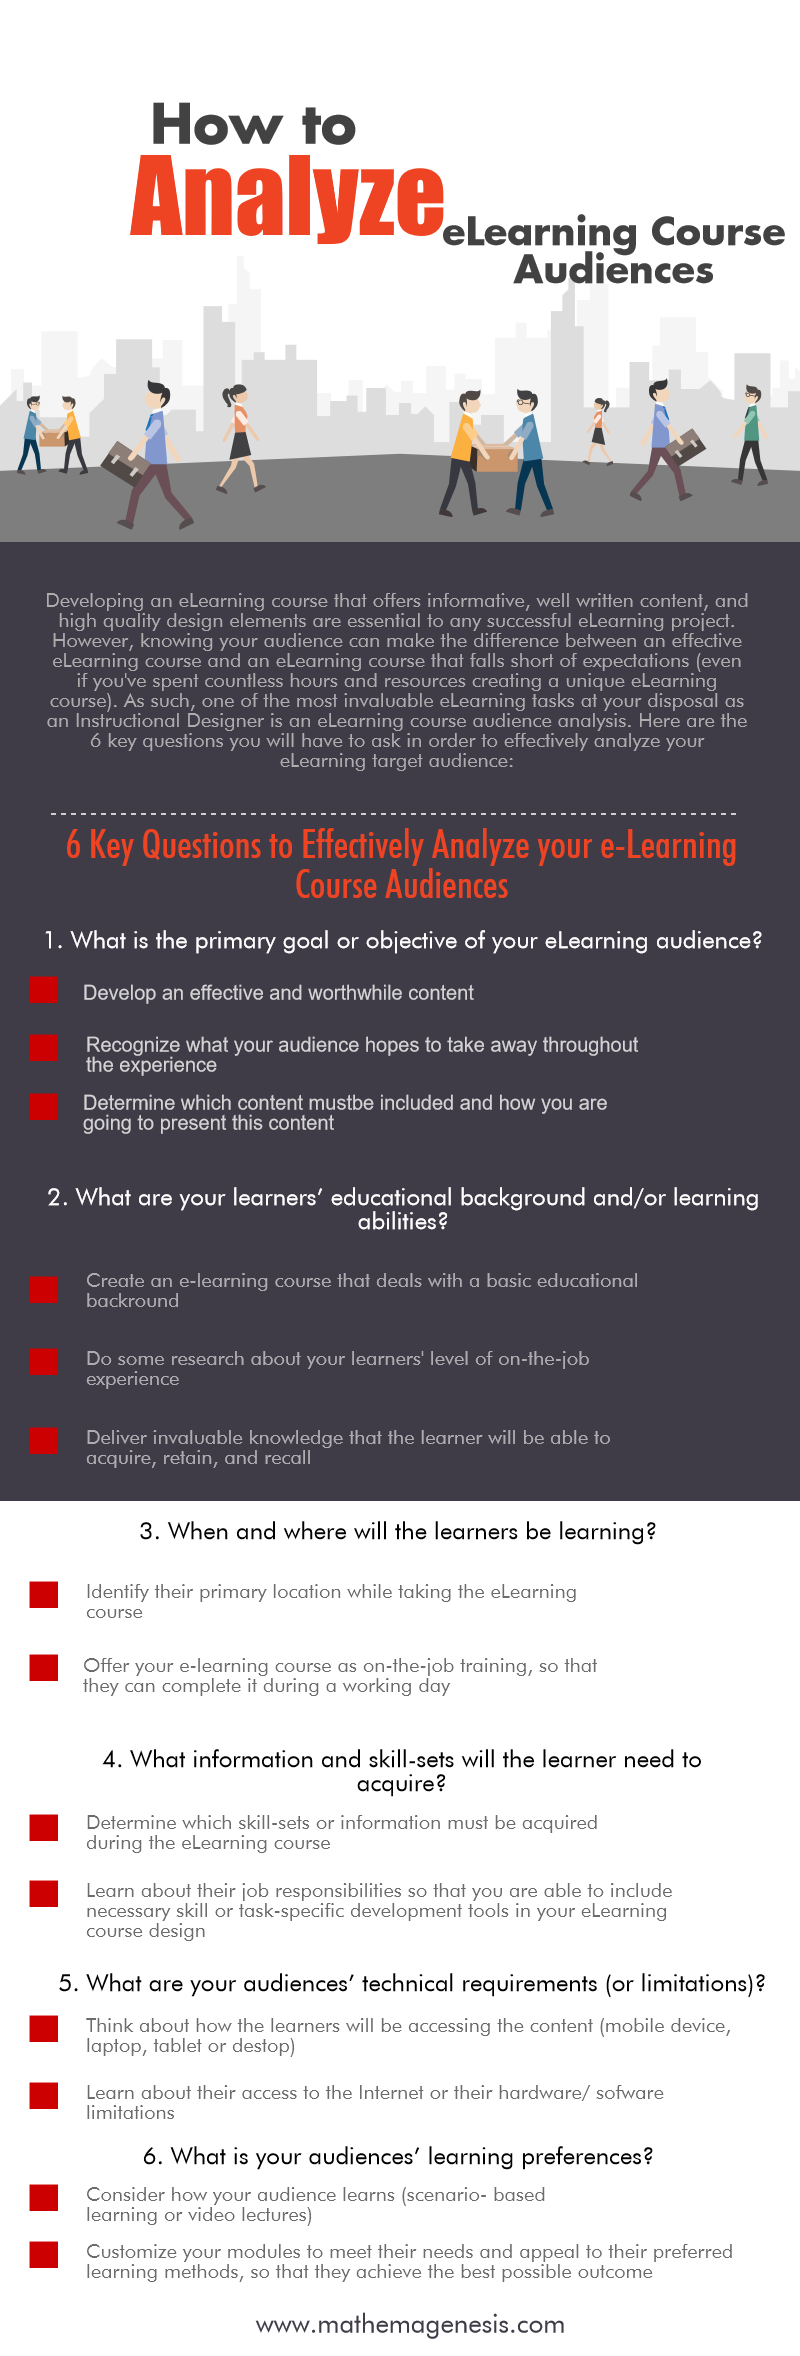 how-to-analyze-an-e-learning-course-audience-mathemagenesis-com